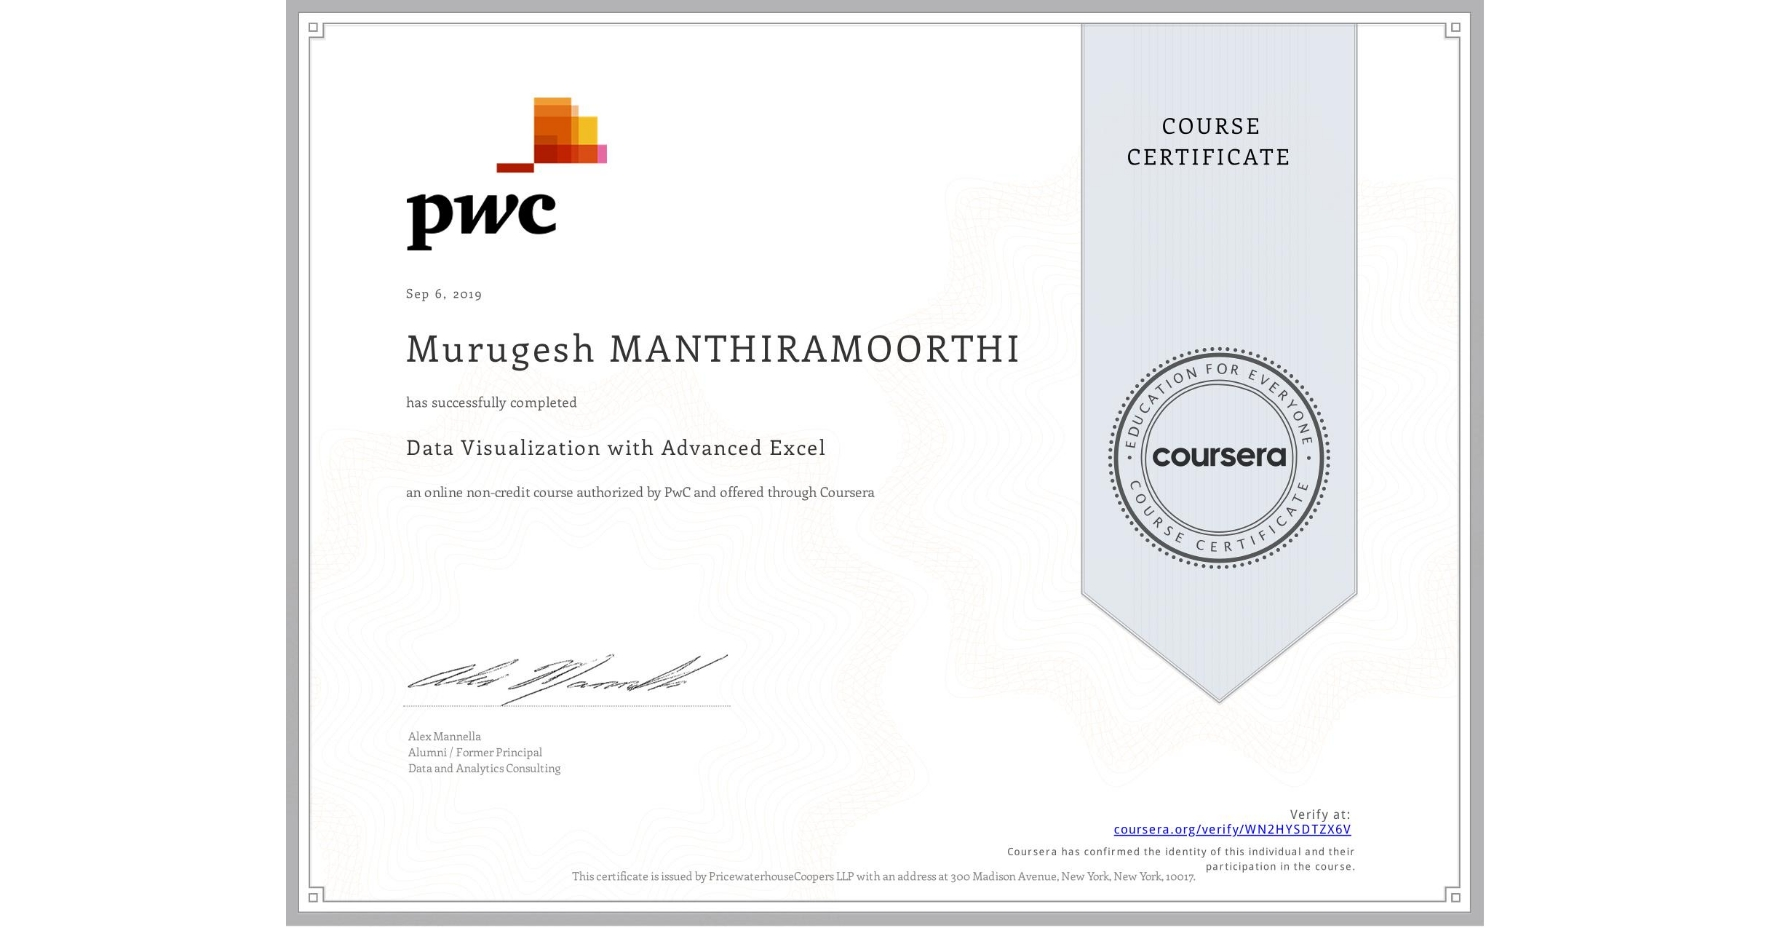 View certificate for Murugesh Manthiramoorthi, Data Visualization with Advanced Excel, an online non-credit course authorized by PwC and offered through Coursera